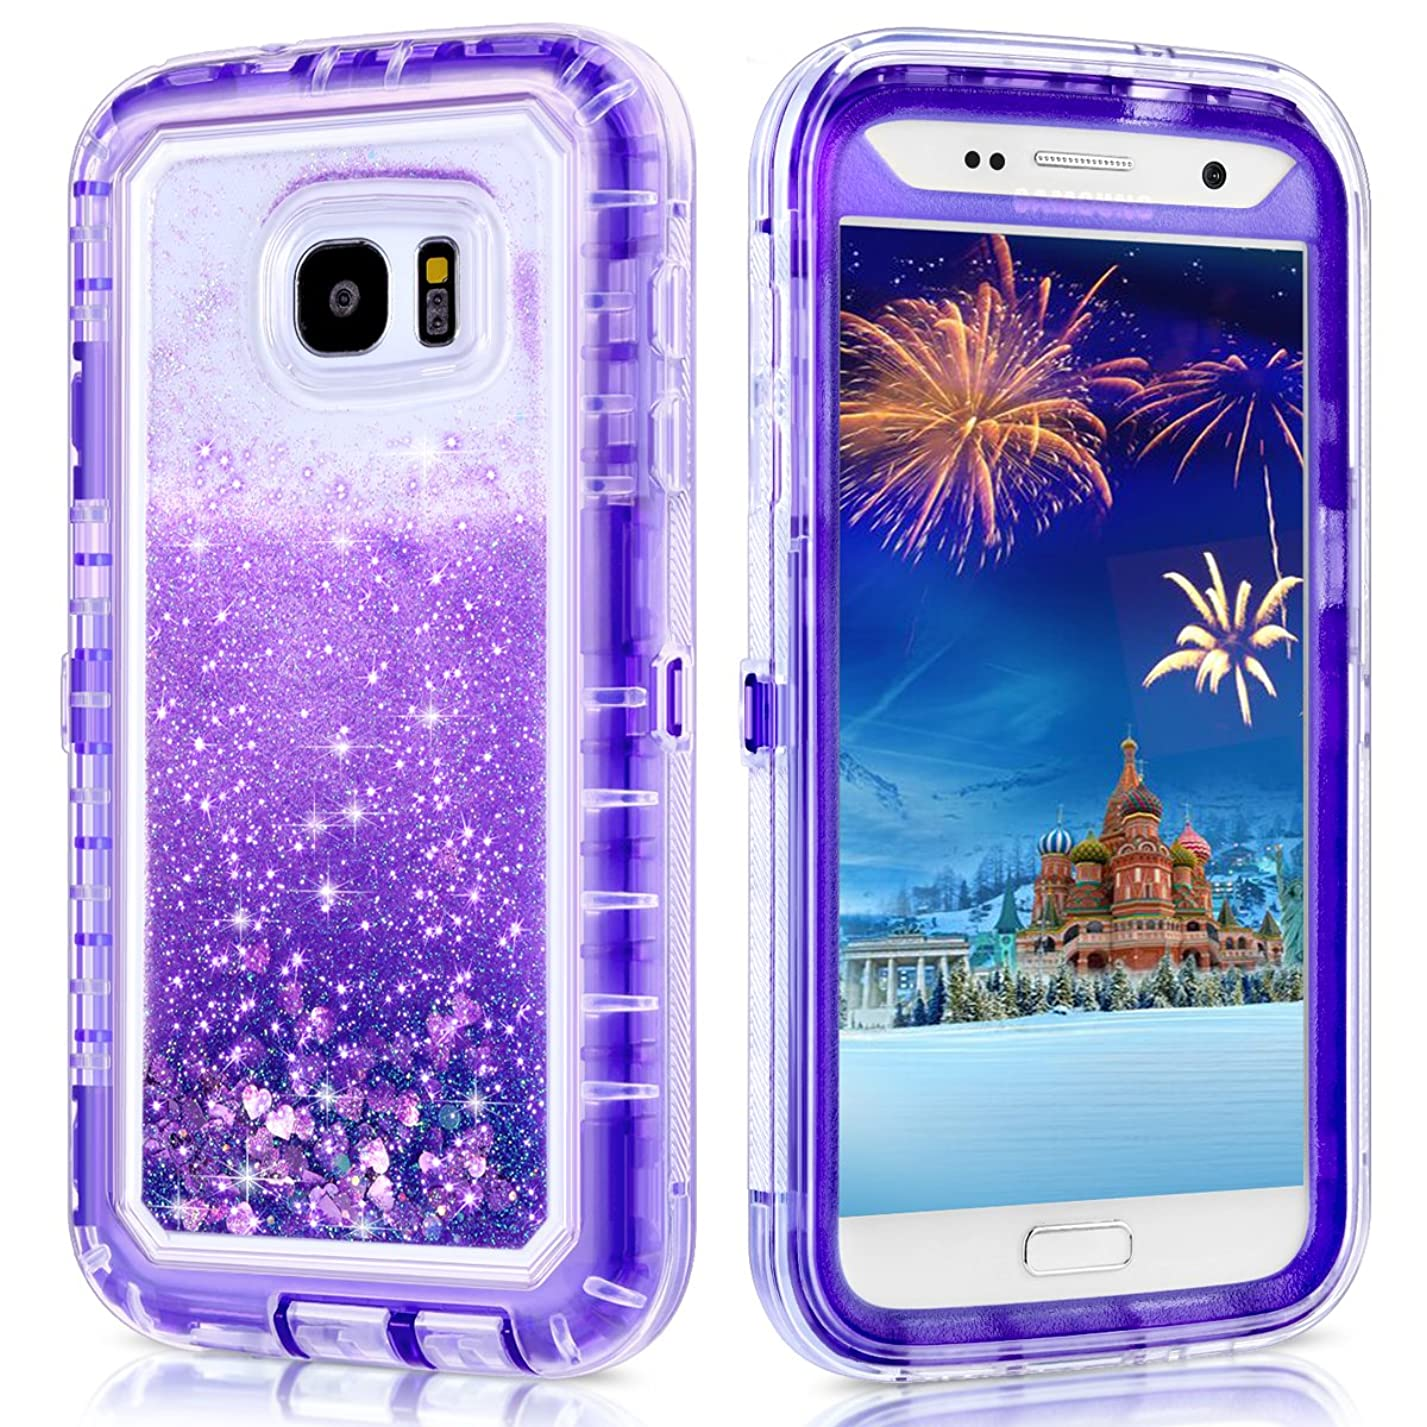 WOLLONY Galaxy S7 Case, 360 Full Body Shockproof Liquid Glitter Quicksand Bling Case Heavy Duty Phone Bumper Soft Non-Slip Clear Rubber Protective Cover for Samsung Galaxy S7 (Purple) uk15549065